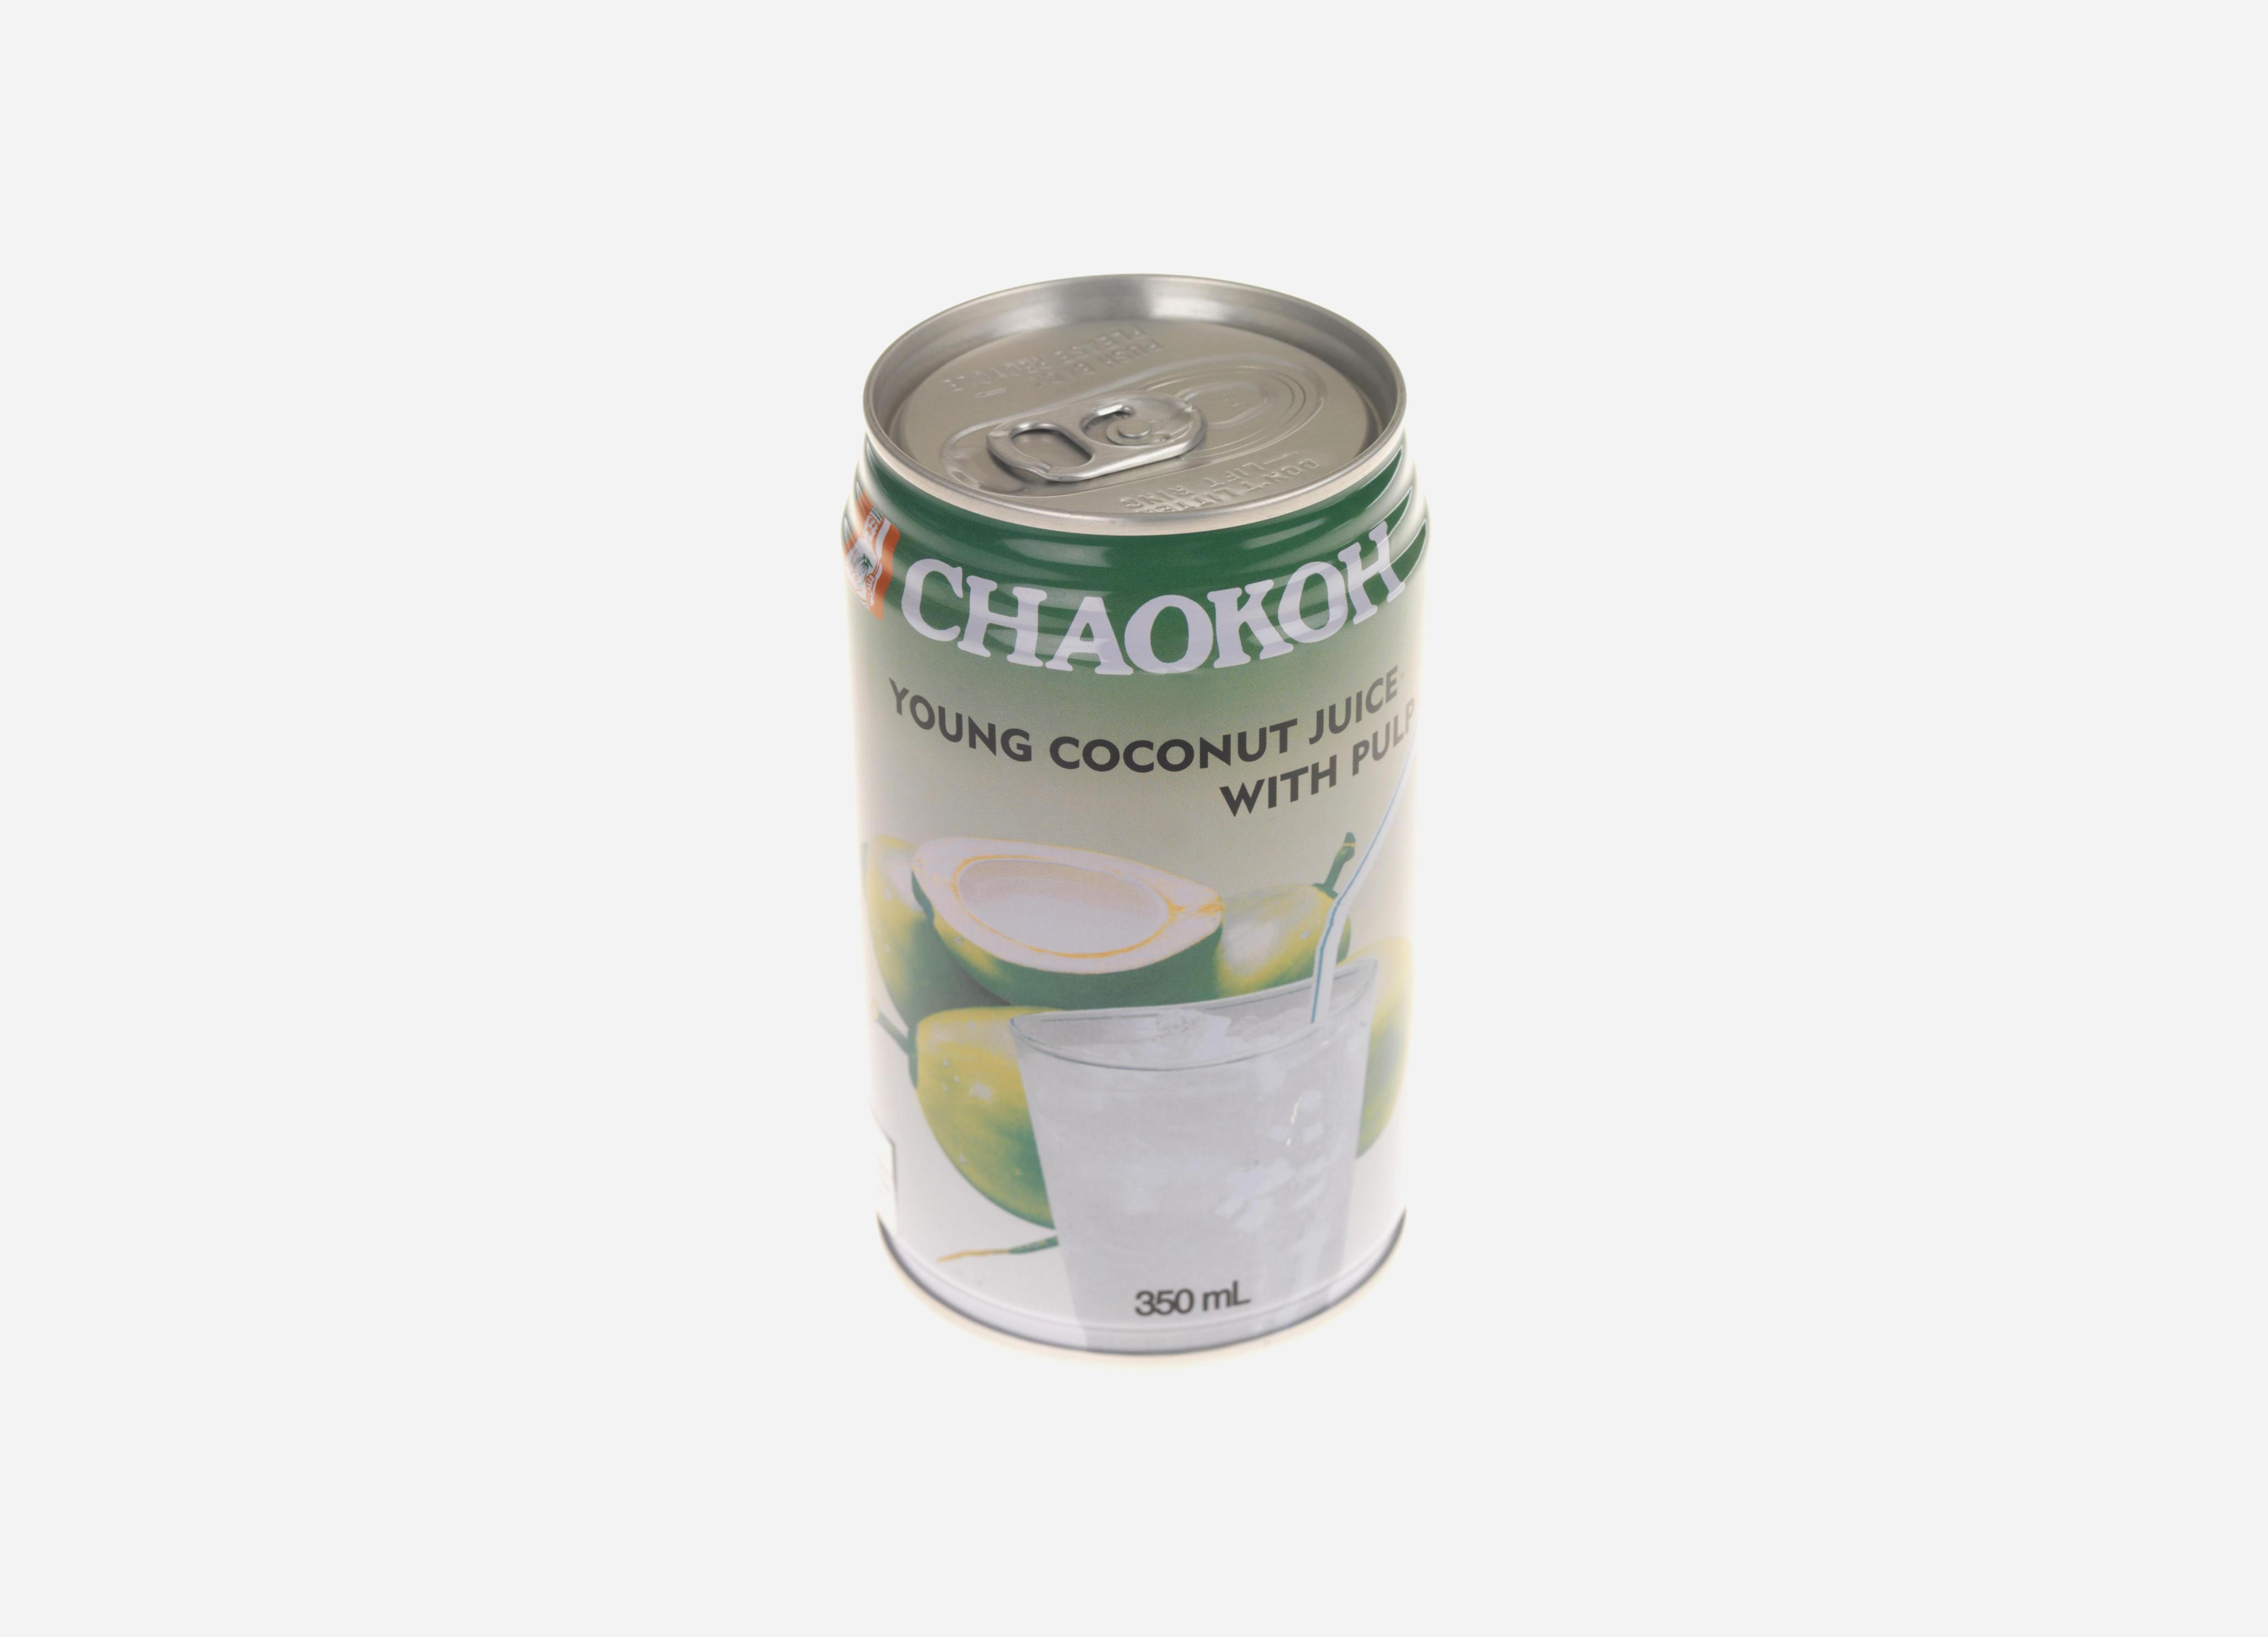 Target drops Chaokoh coconut milk over allegations of monkey labor